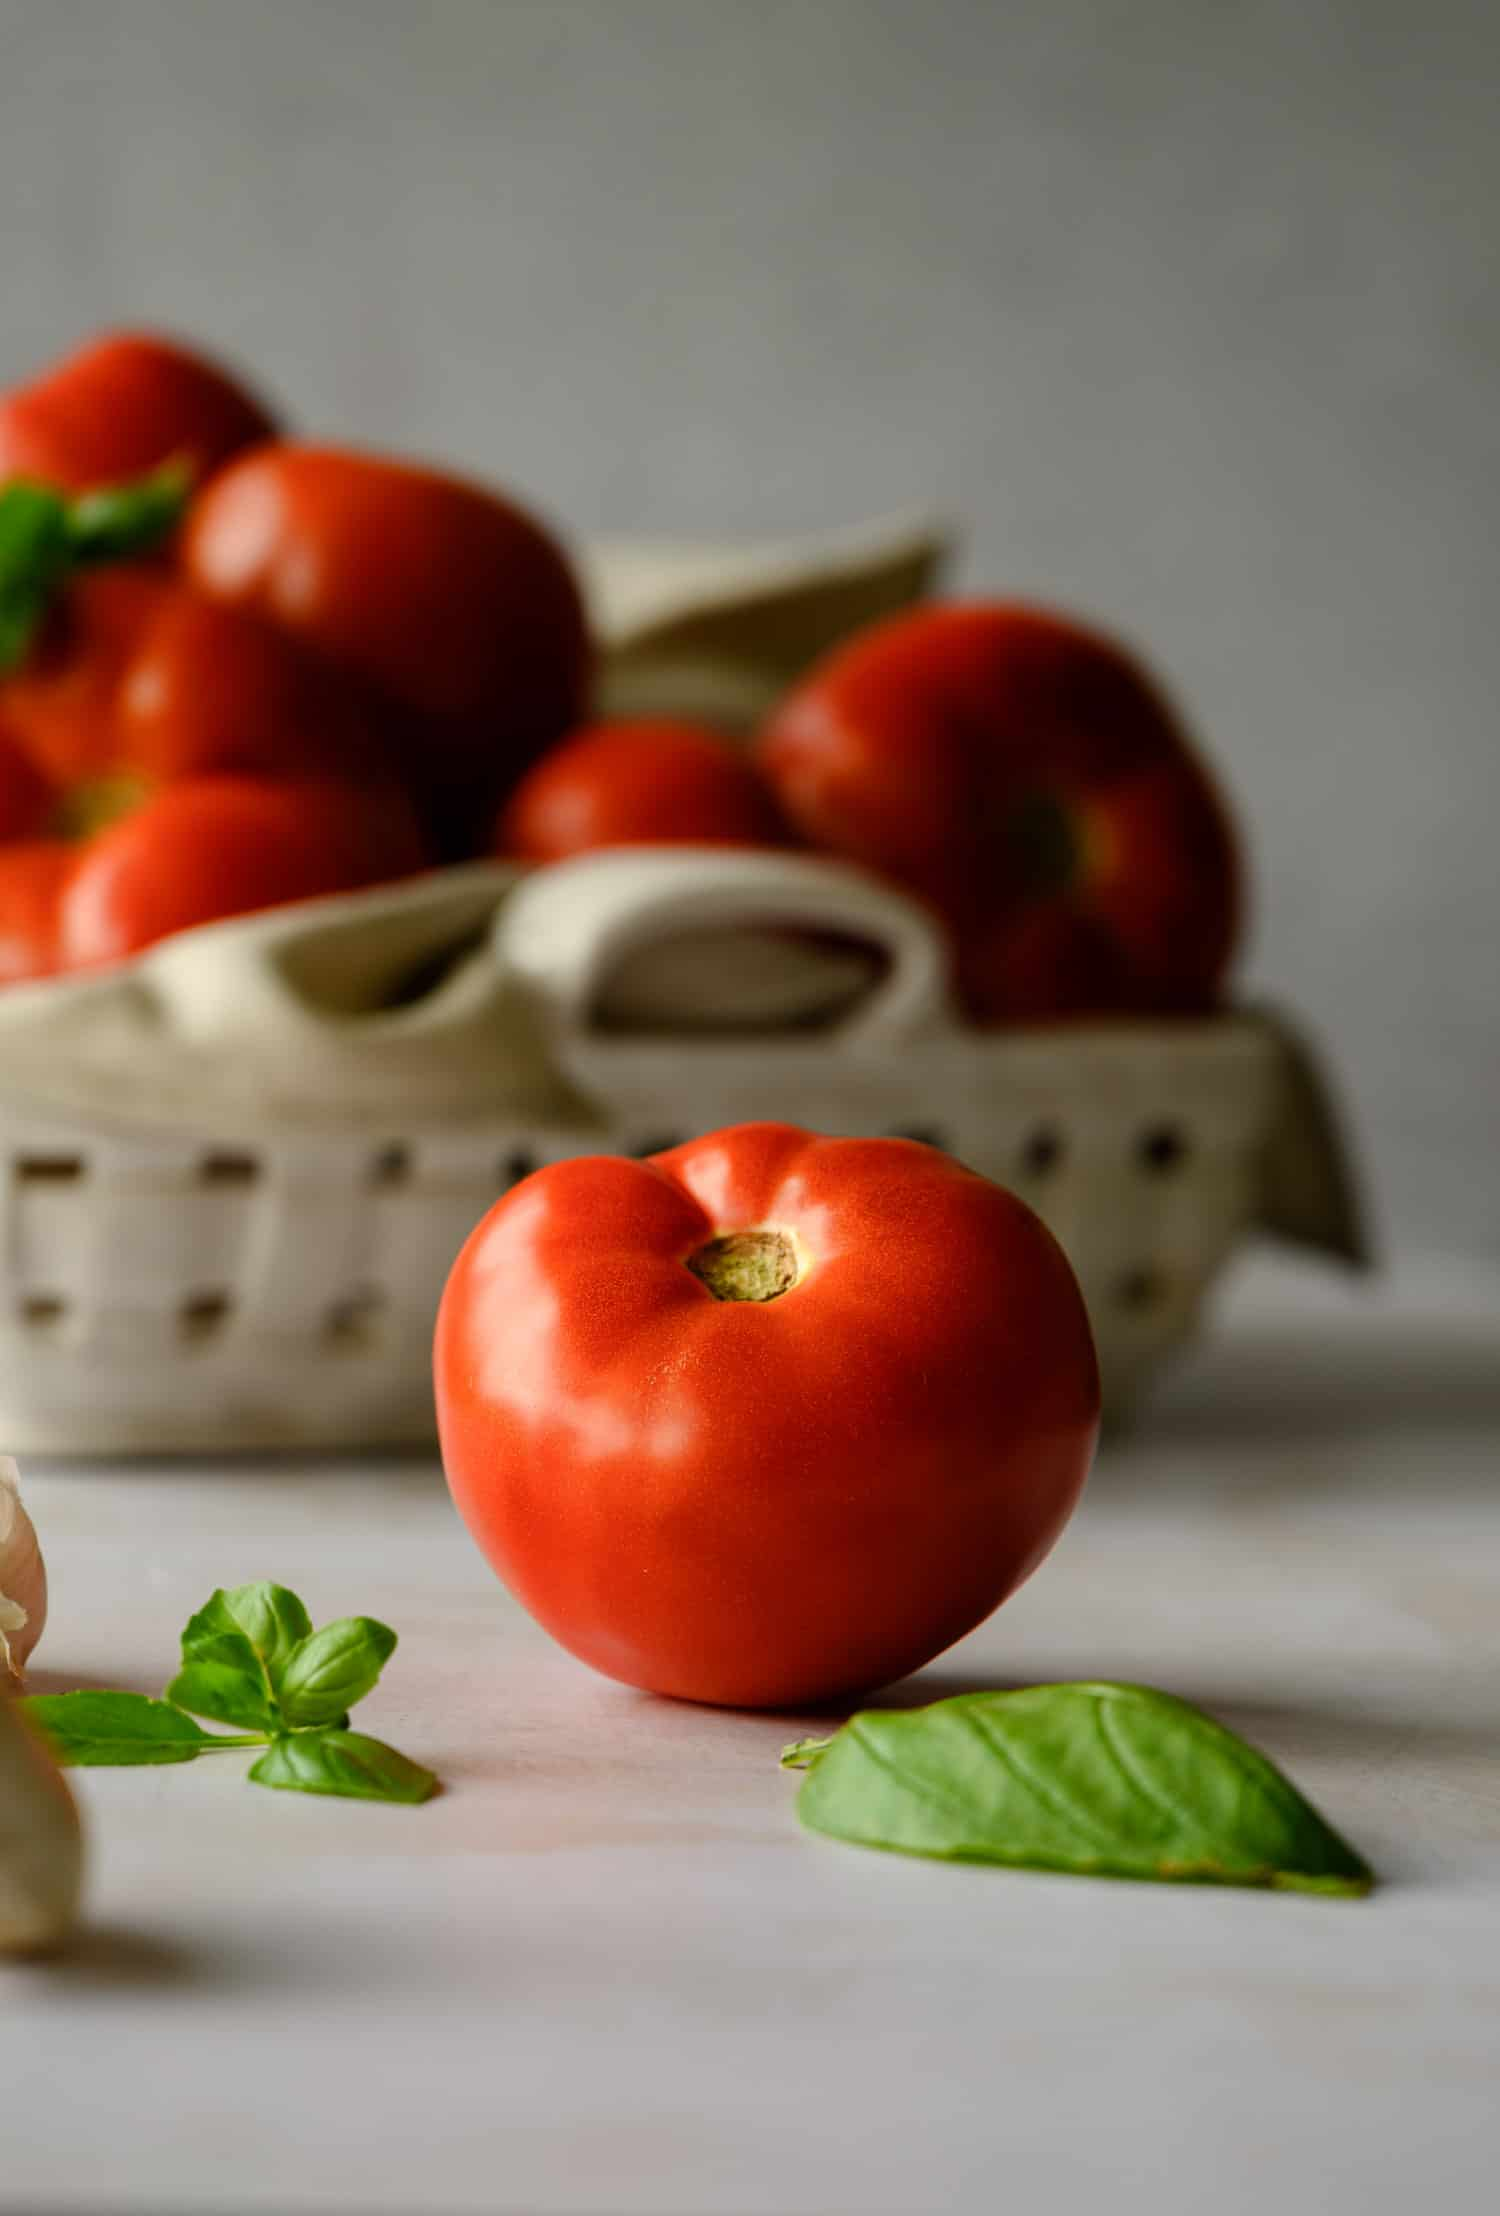 fresh garden tomato on a white background with loose basil leaves and more tomatoes in a white basket